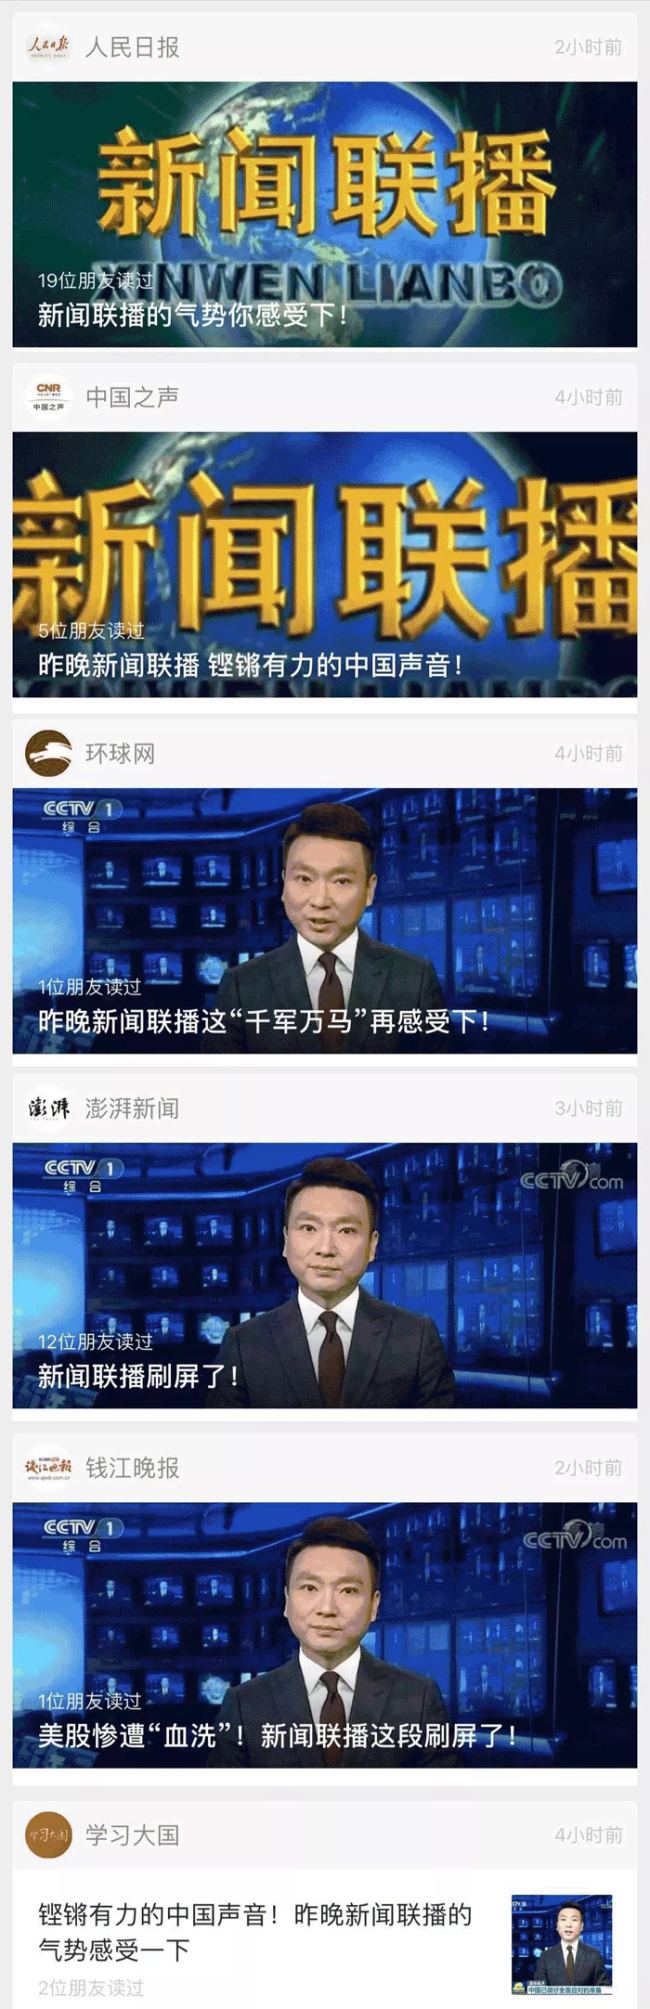 A screen shot showing that many Chinese media agencies have reprinted the CCTV editorial. [Photo: China Plus]